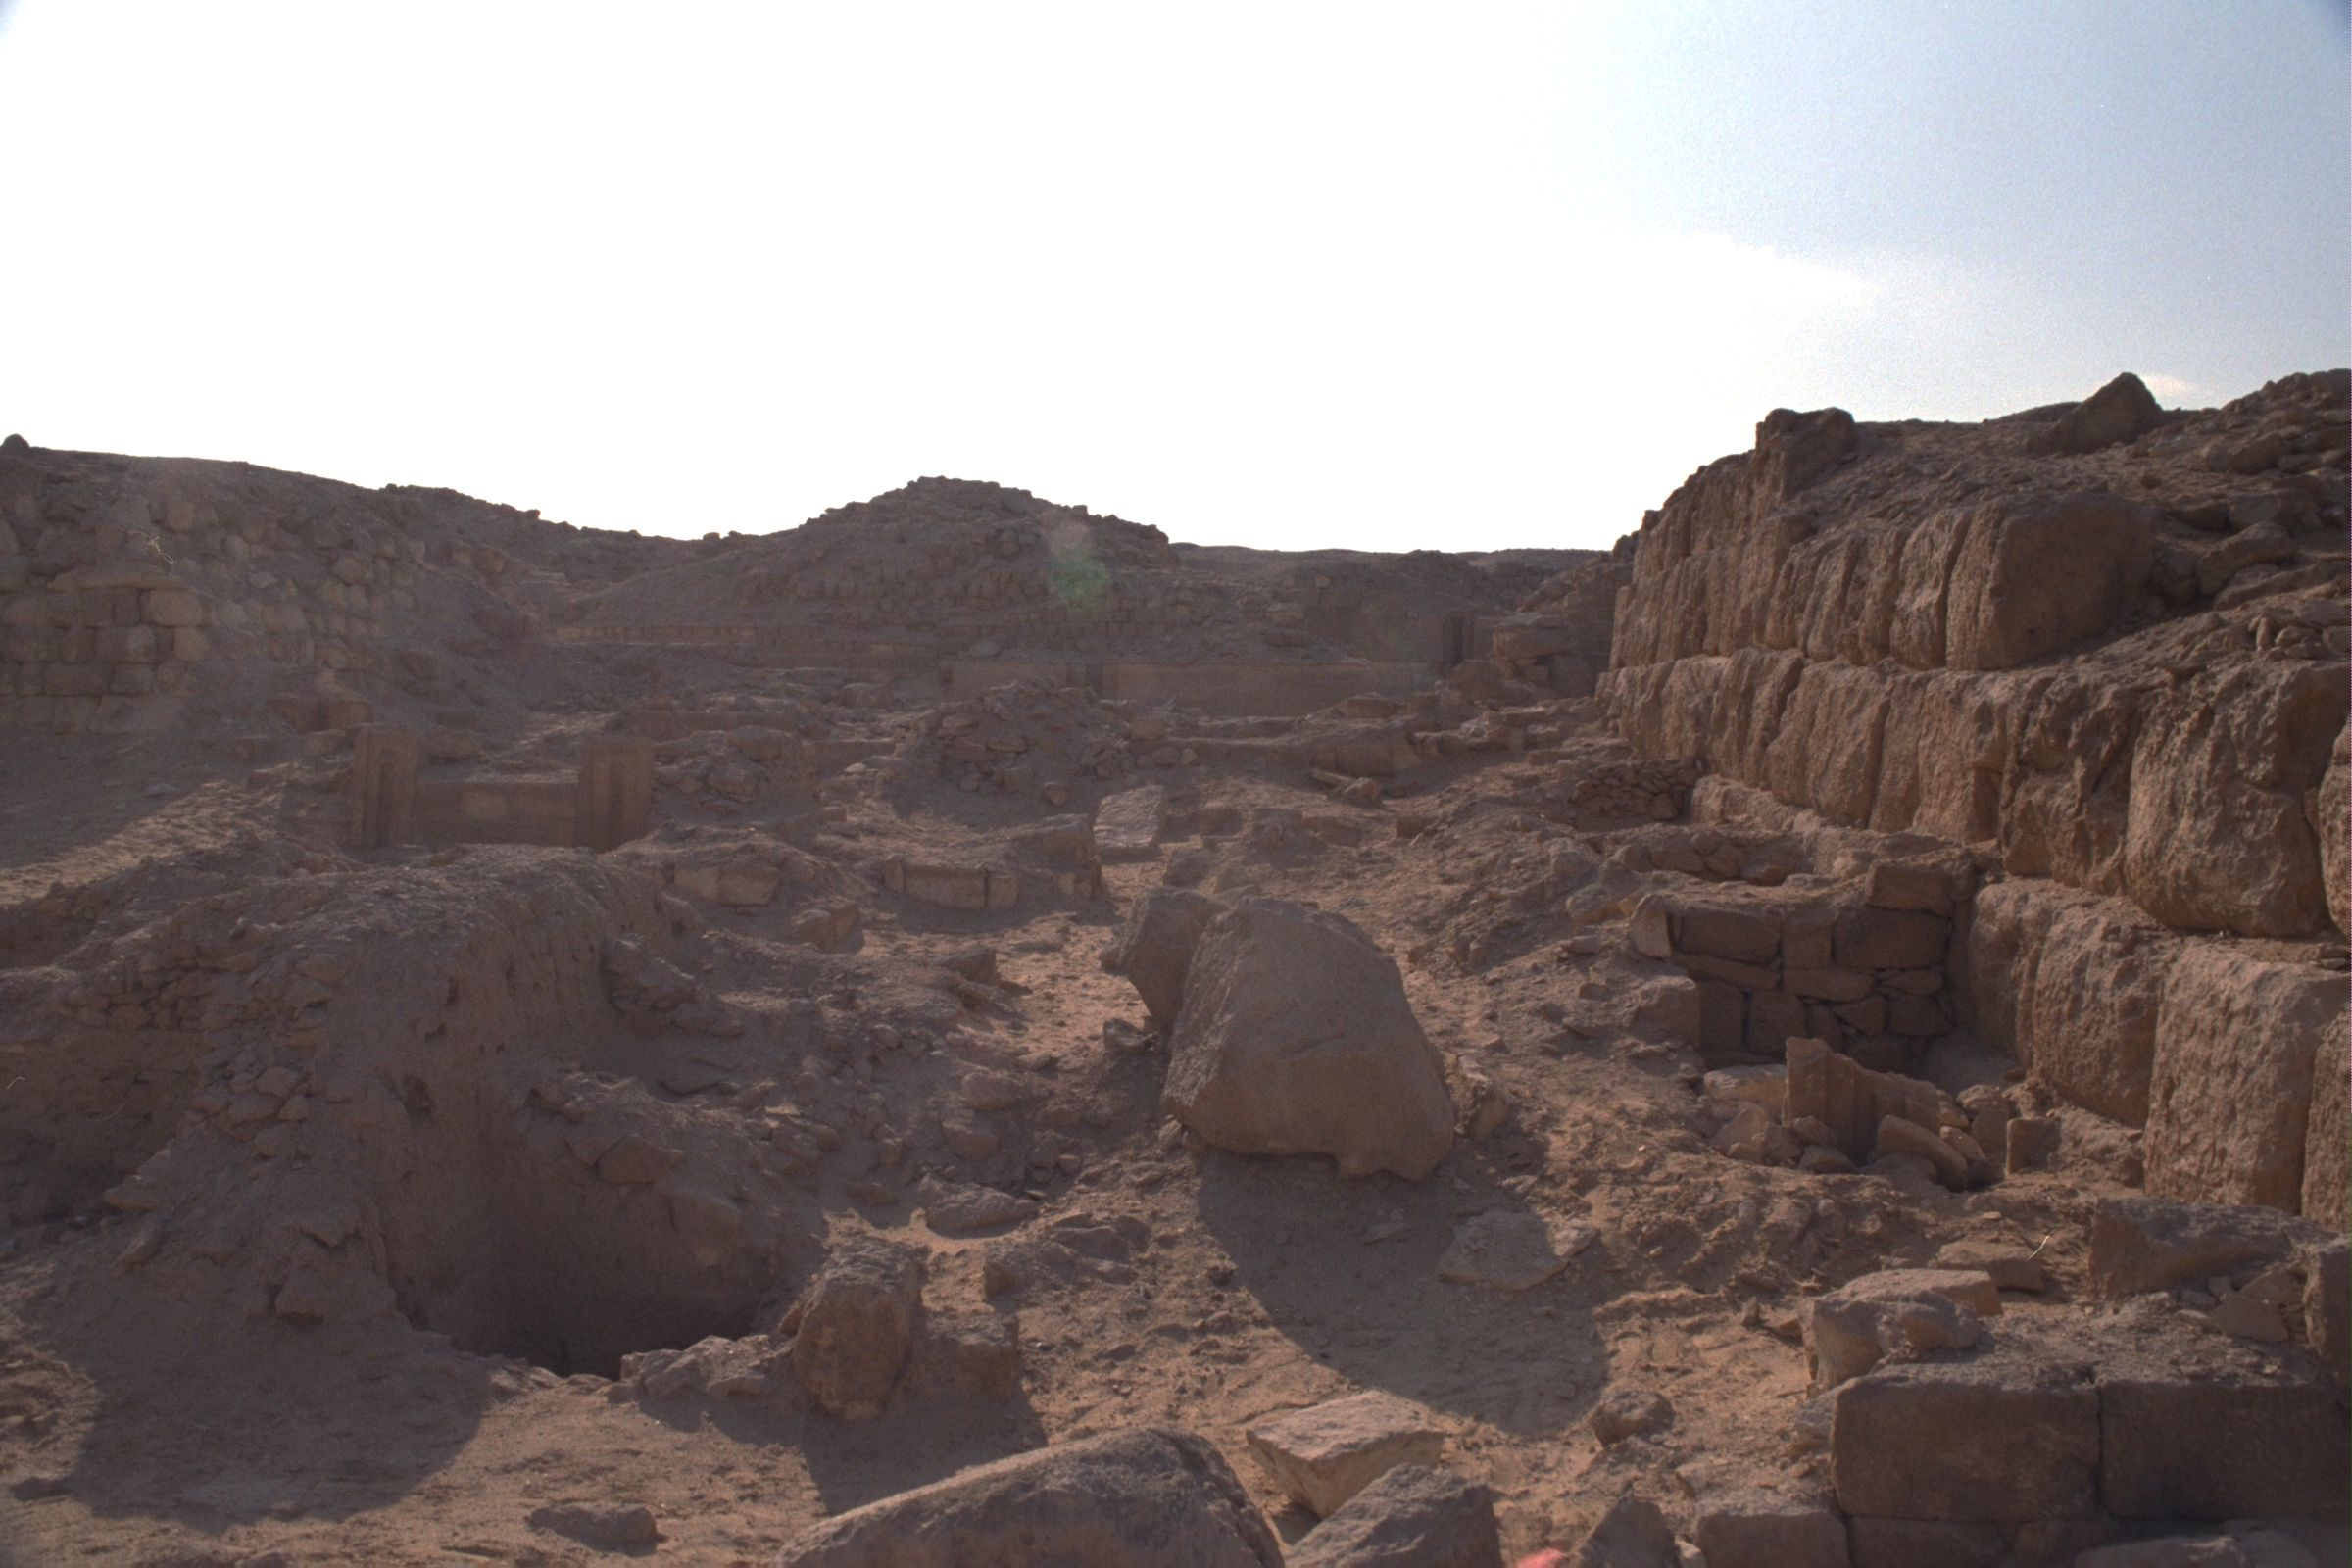 Western Cemetery: Site: Giza; View: G 2154a, G 2156', G 2151, G 2139, G 2220